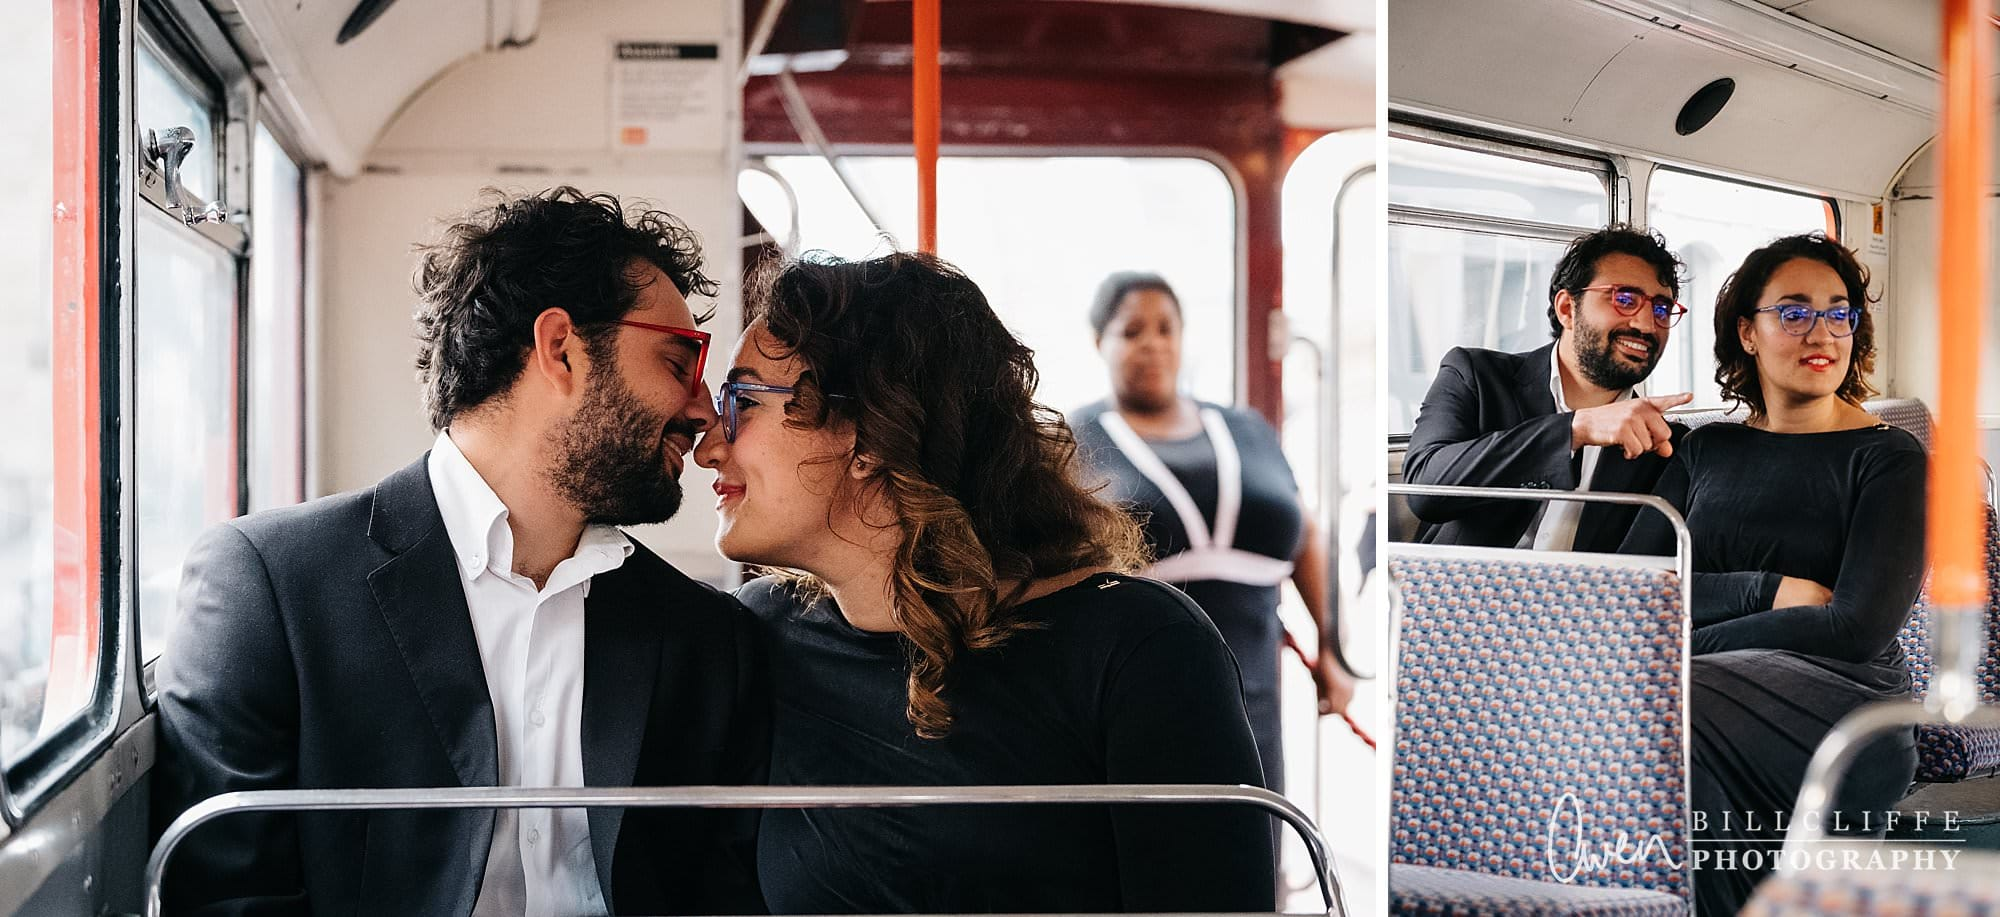 london engagement proposal photographer routemaster gr 010 - A Romantic Marriage Proposal on a London Routemaster Bus